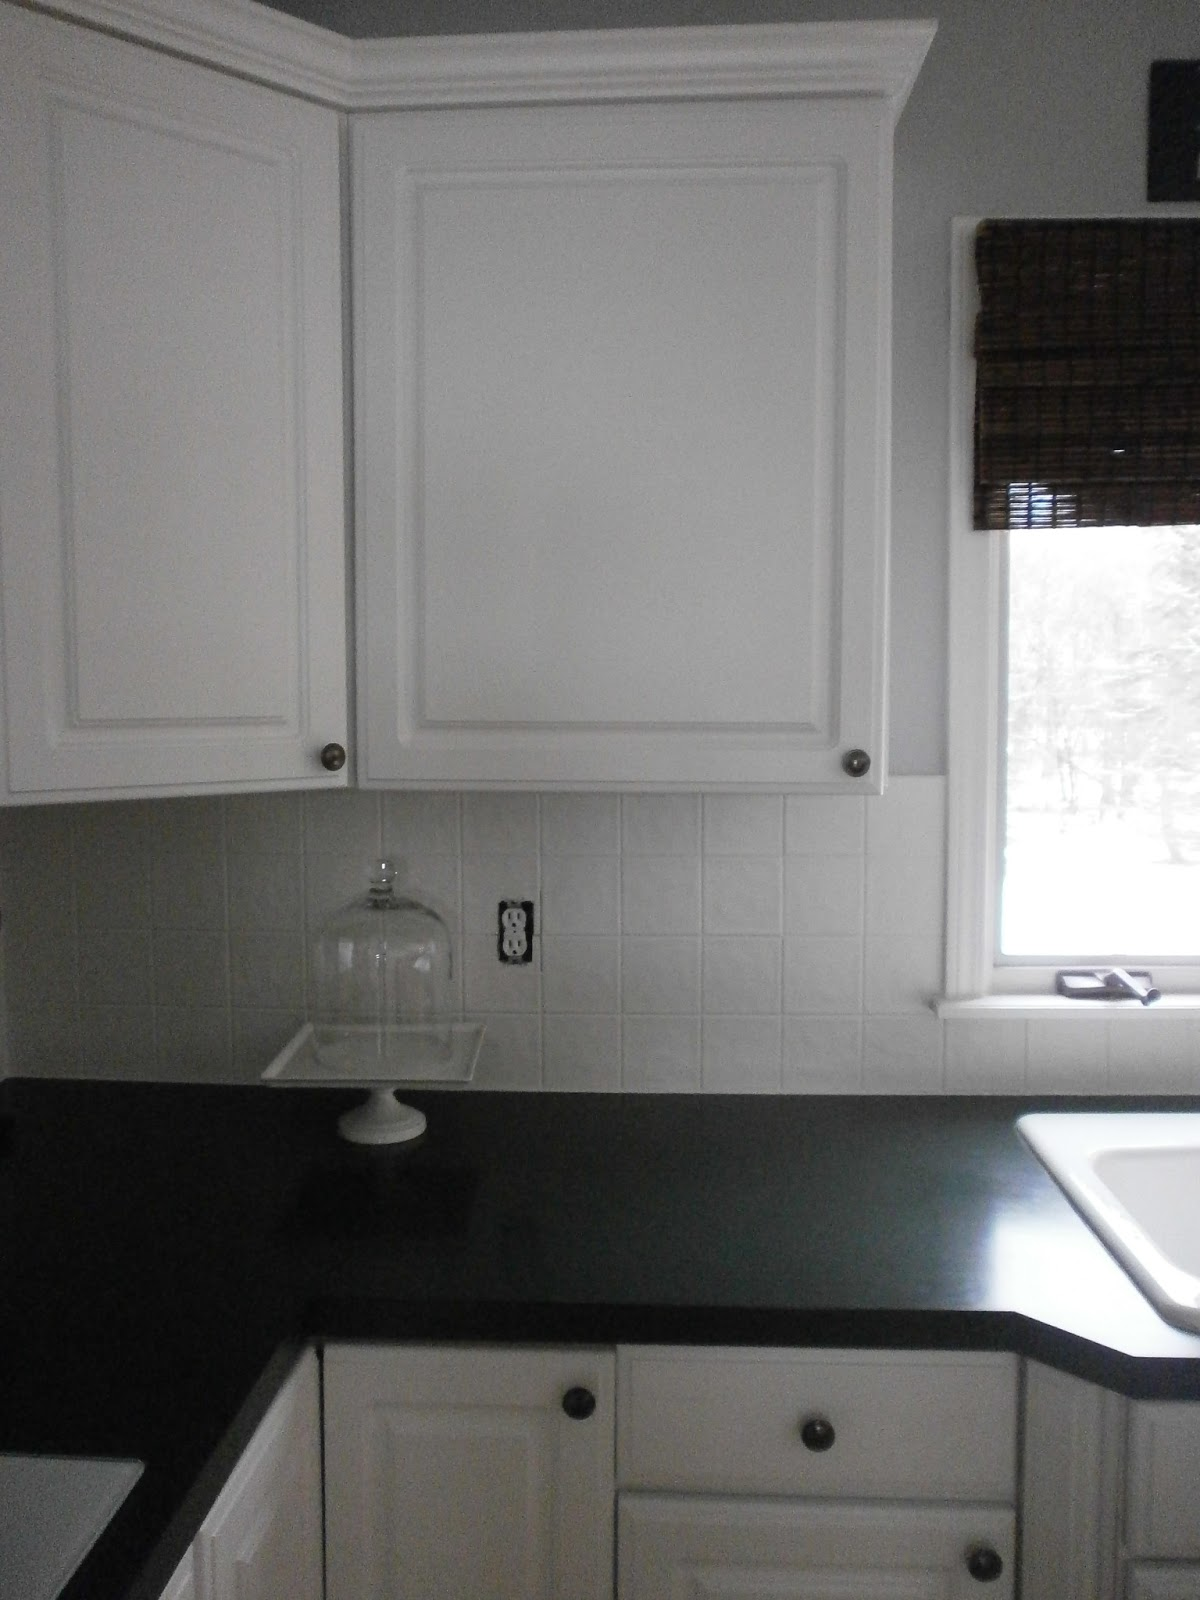 Diy painting a ceramic tile backsplash Ceramic tile kitchen backsplash